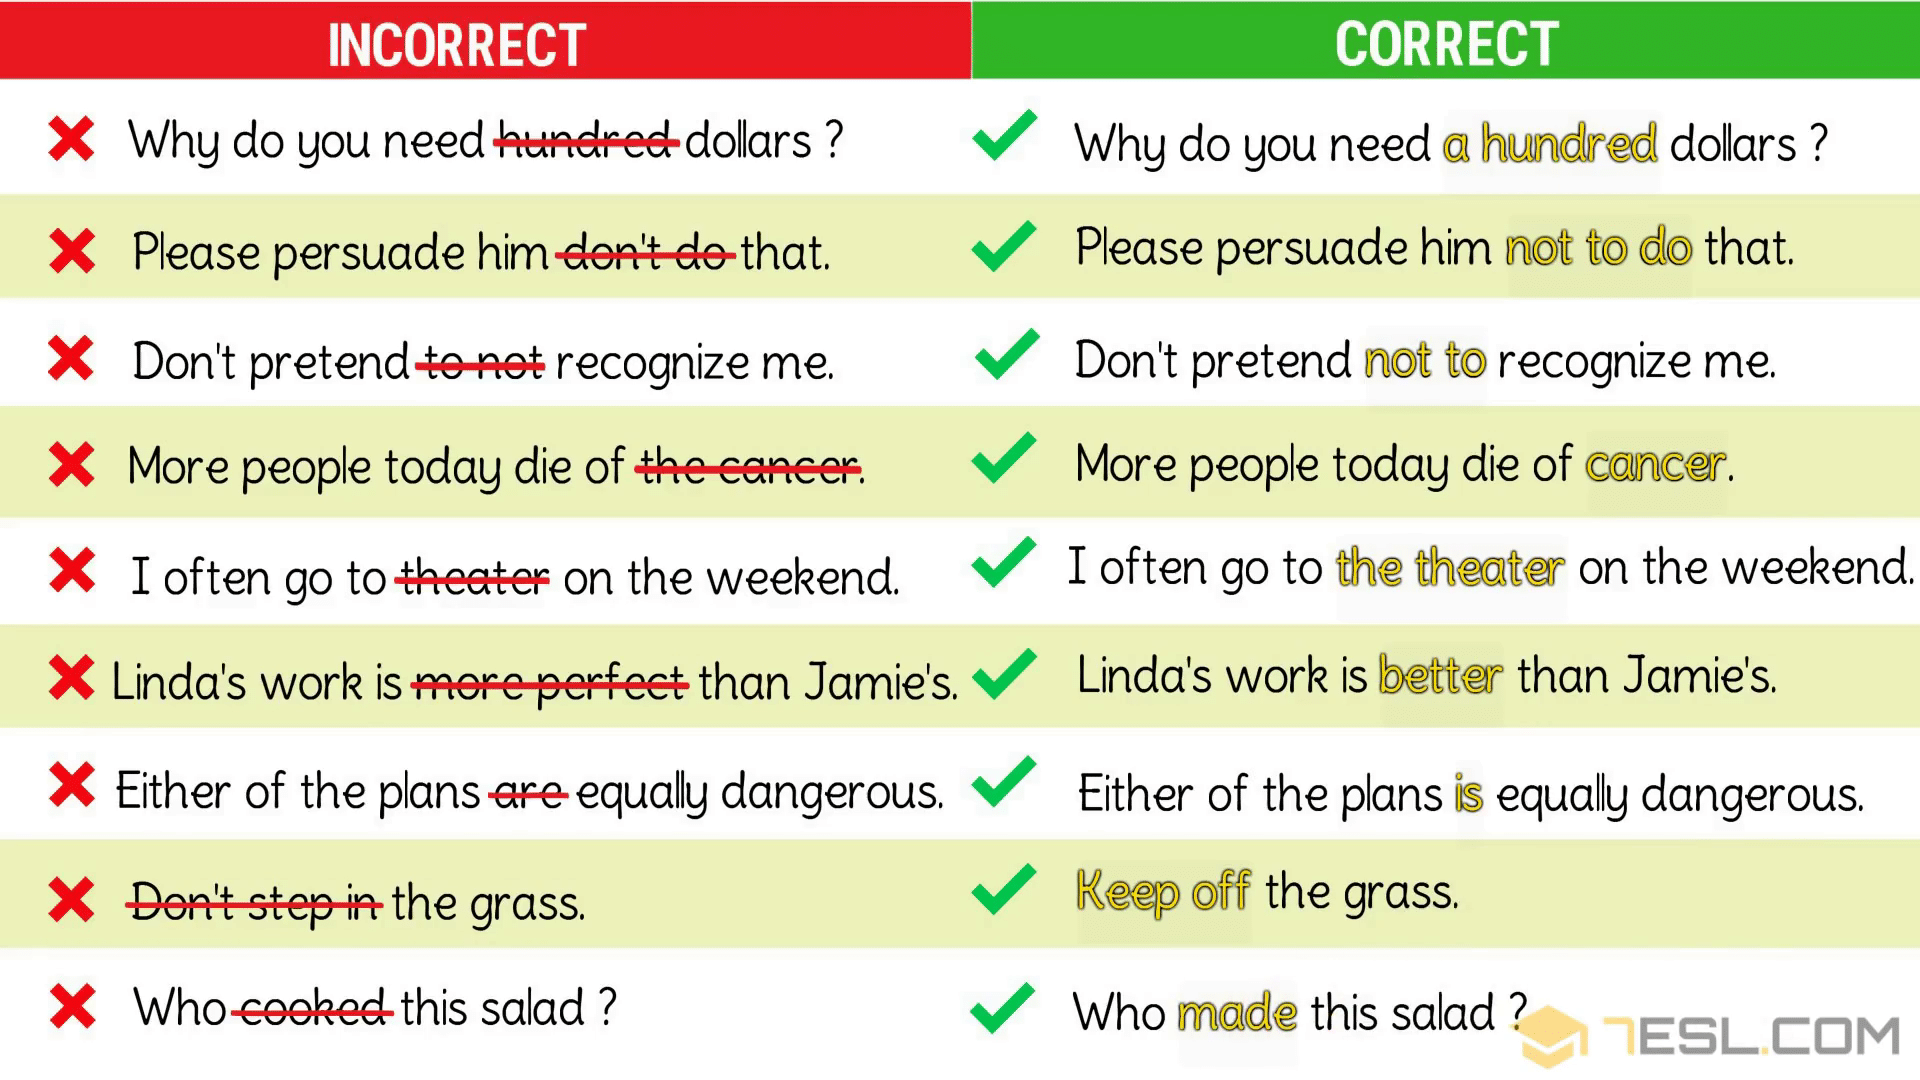 grammar error sentences in wrong order